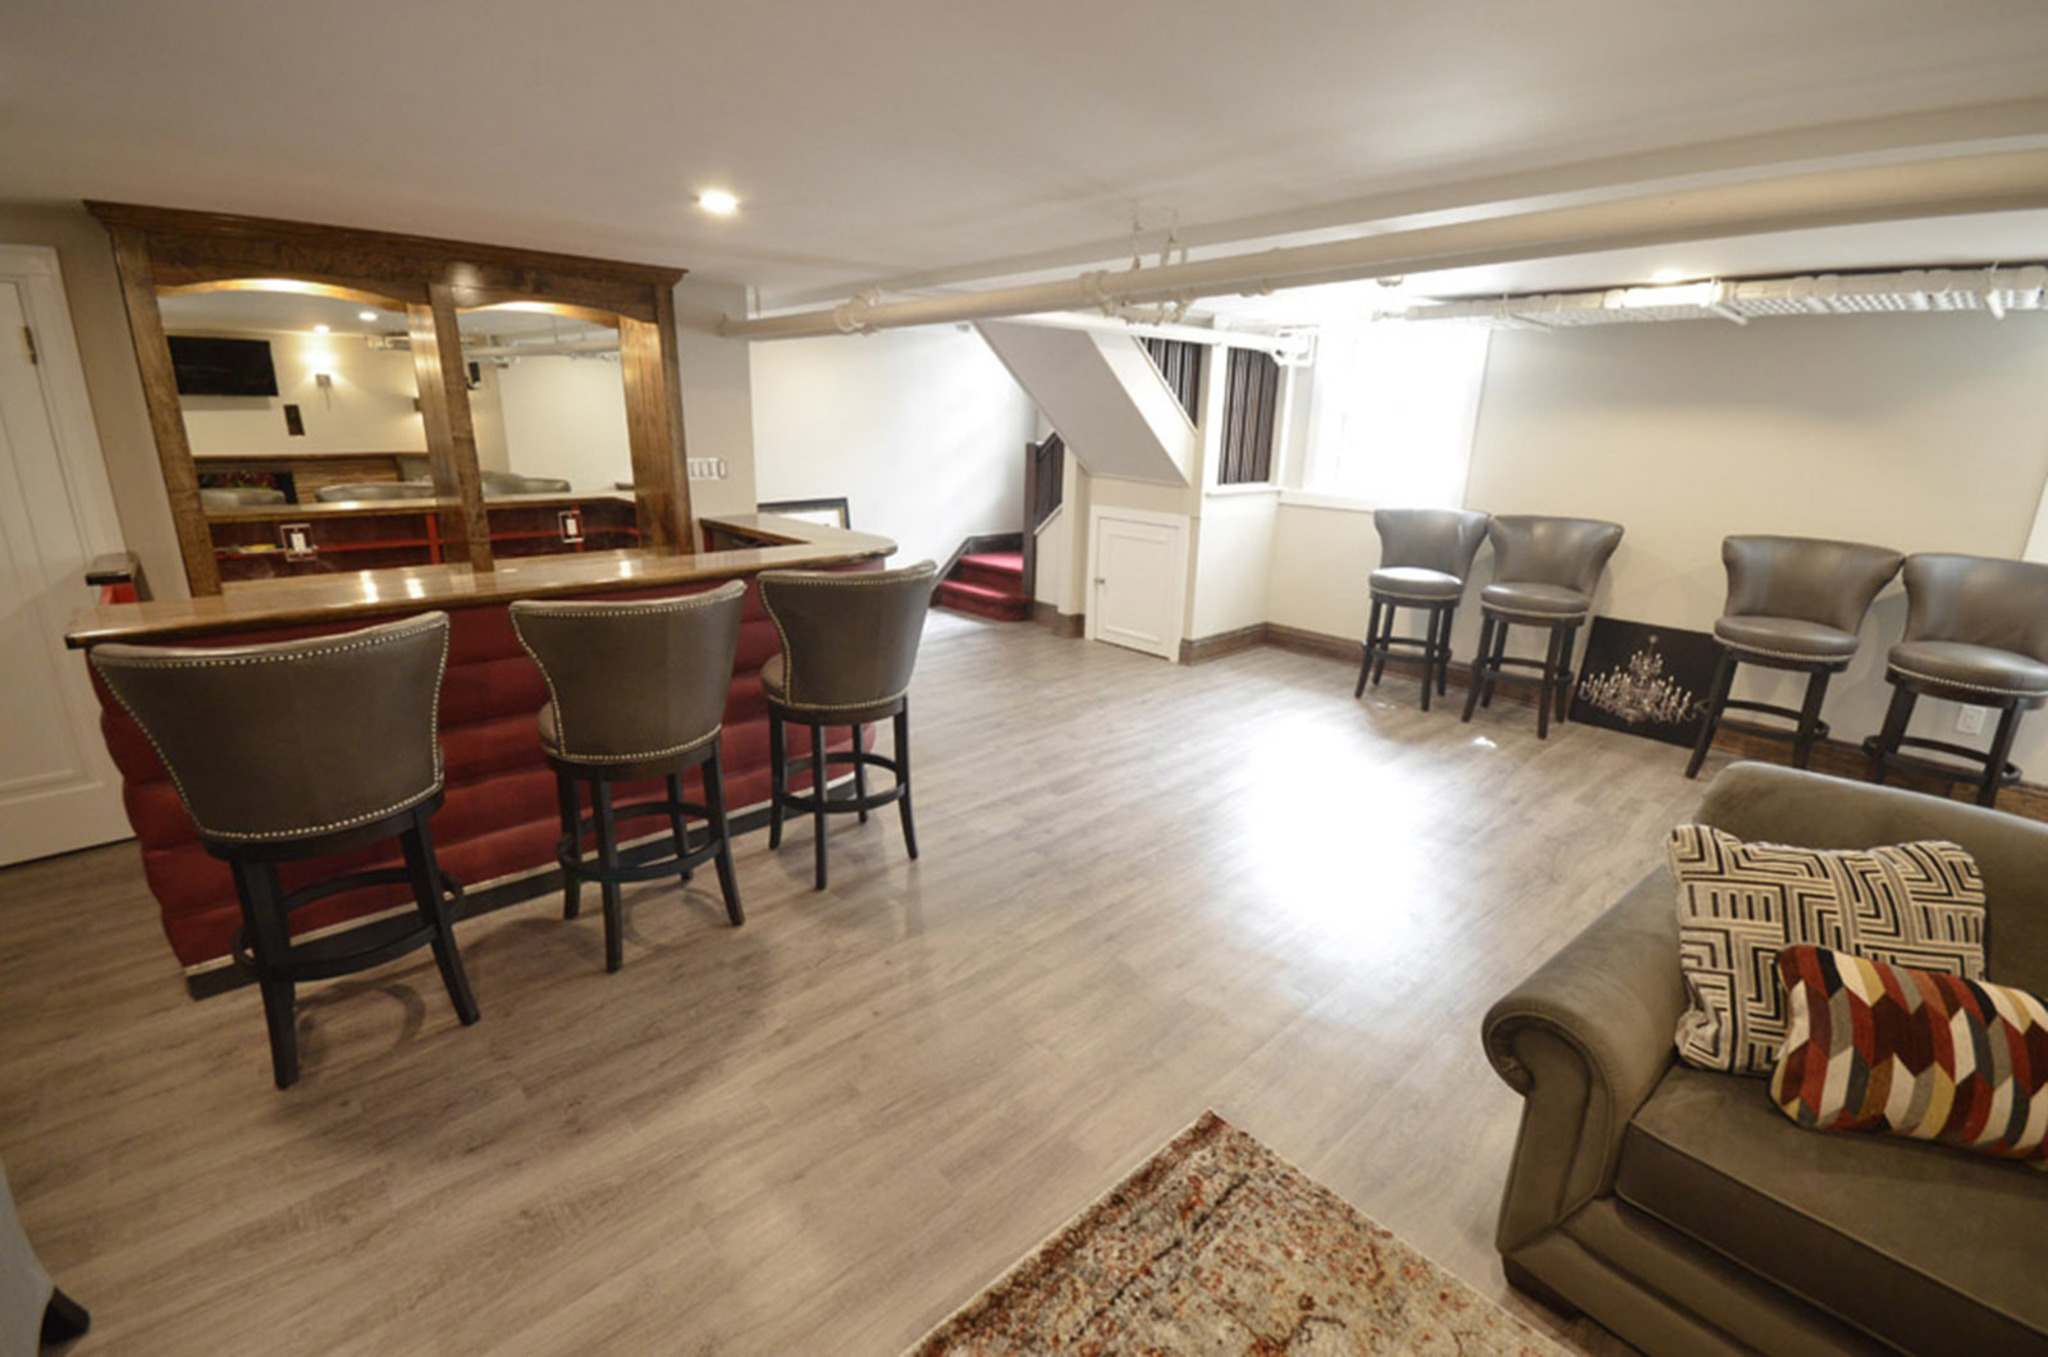 <p>Supplied</p><p>A quality basement renovation can add usable space and value to your home. Information on MHBA RenoMark renovators can be found at homebuilders.mb.ca.</p>